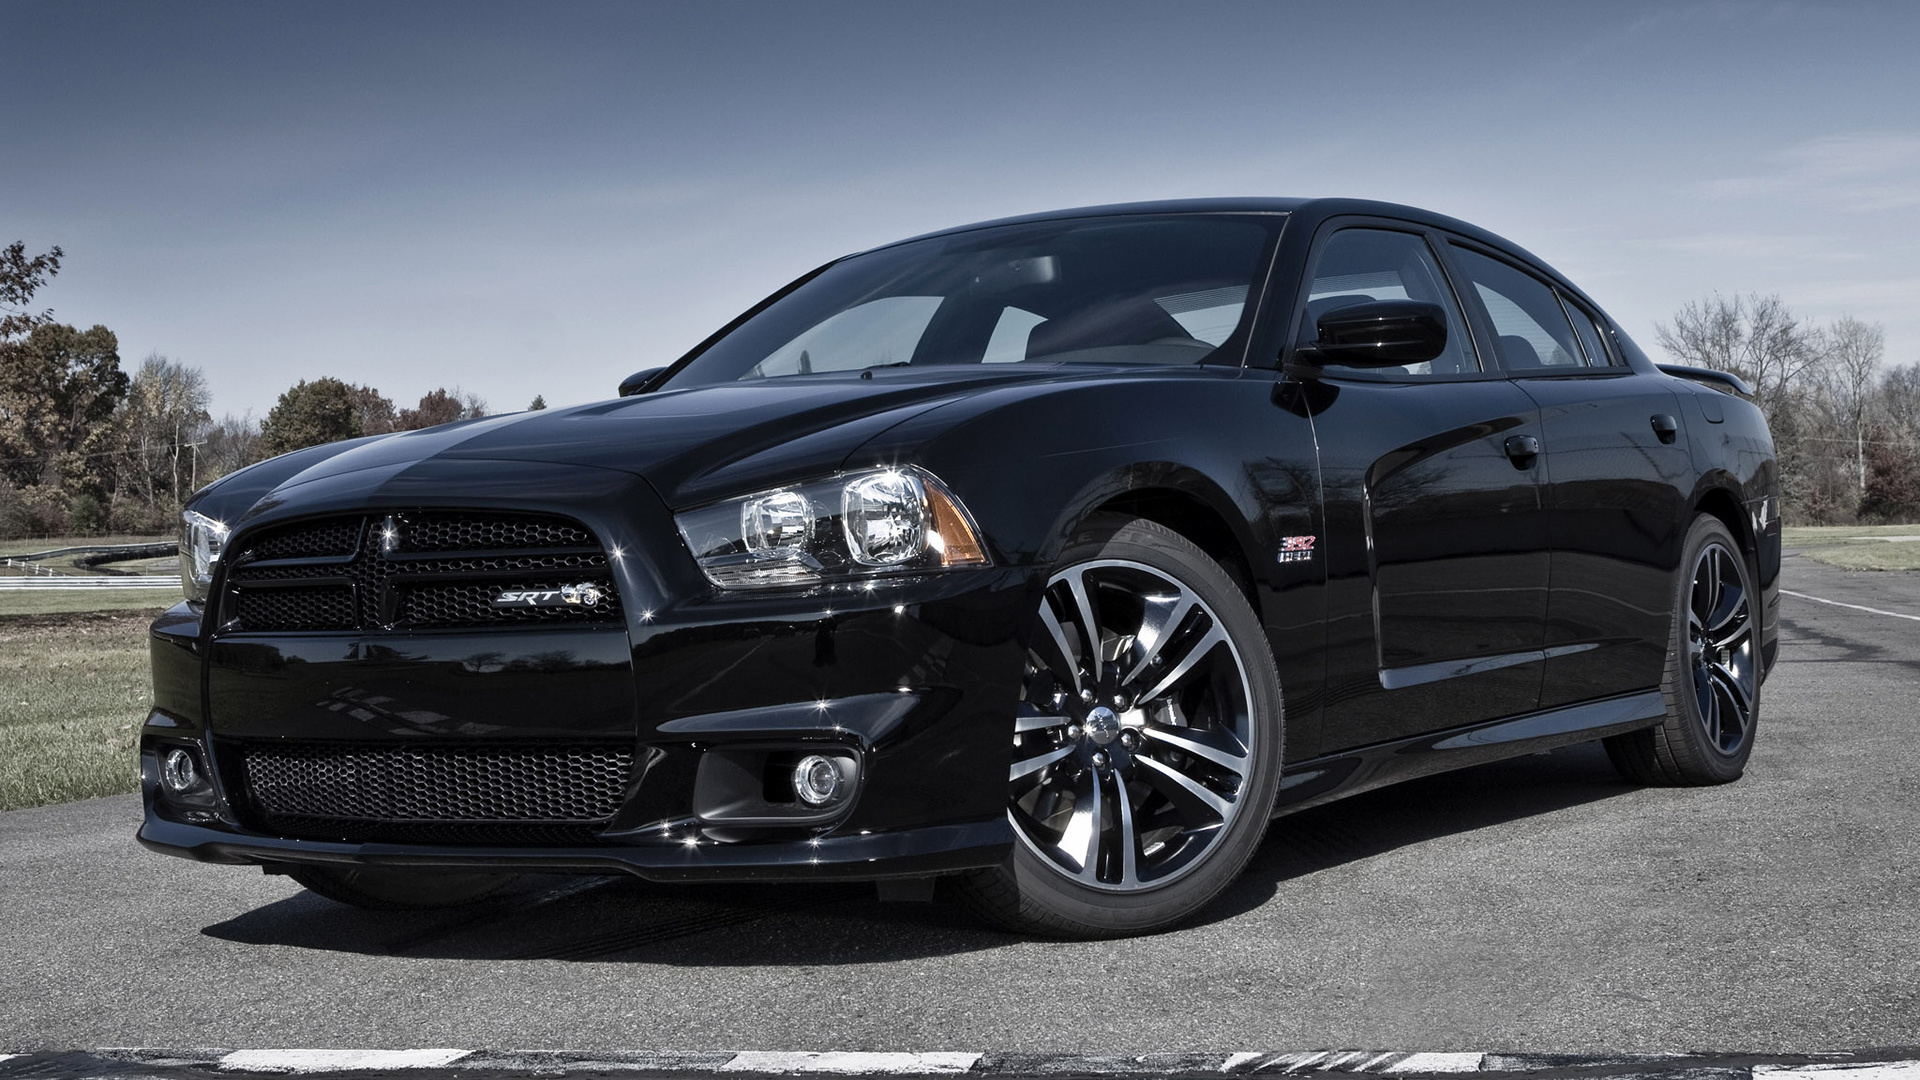 2012 dodge charger srt8 super bee wallpapers and hd